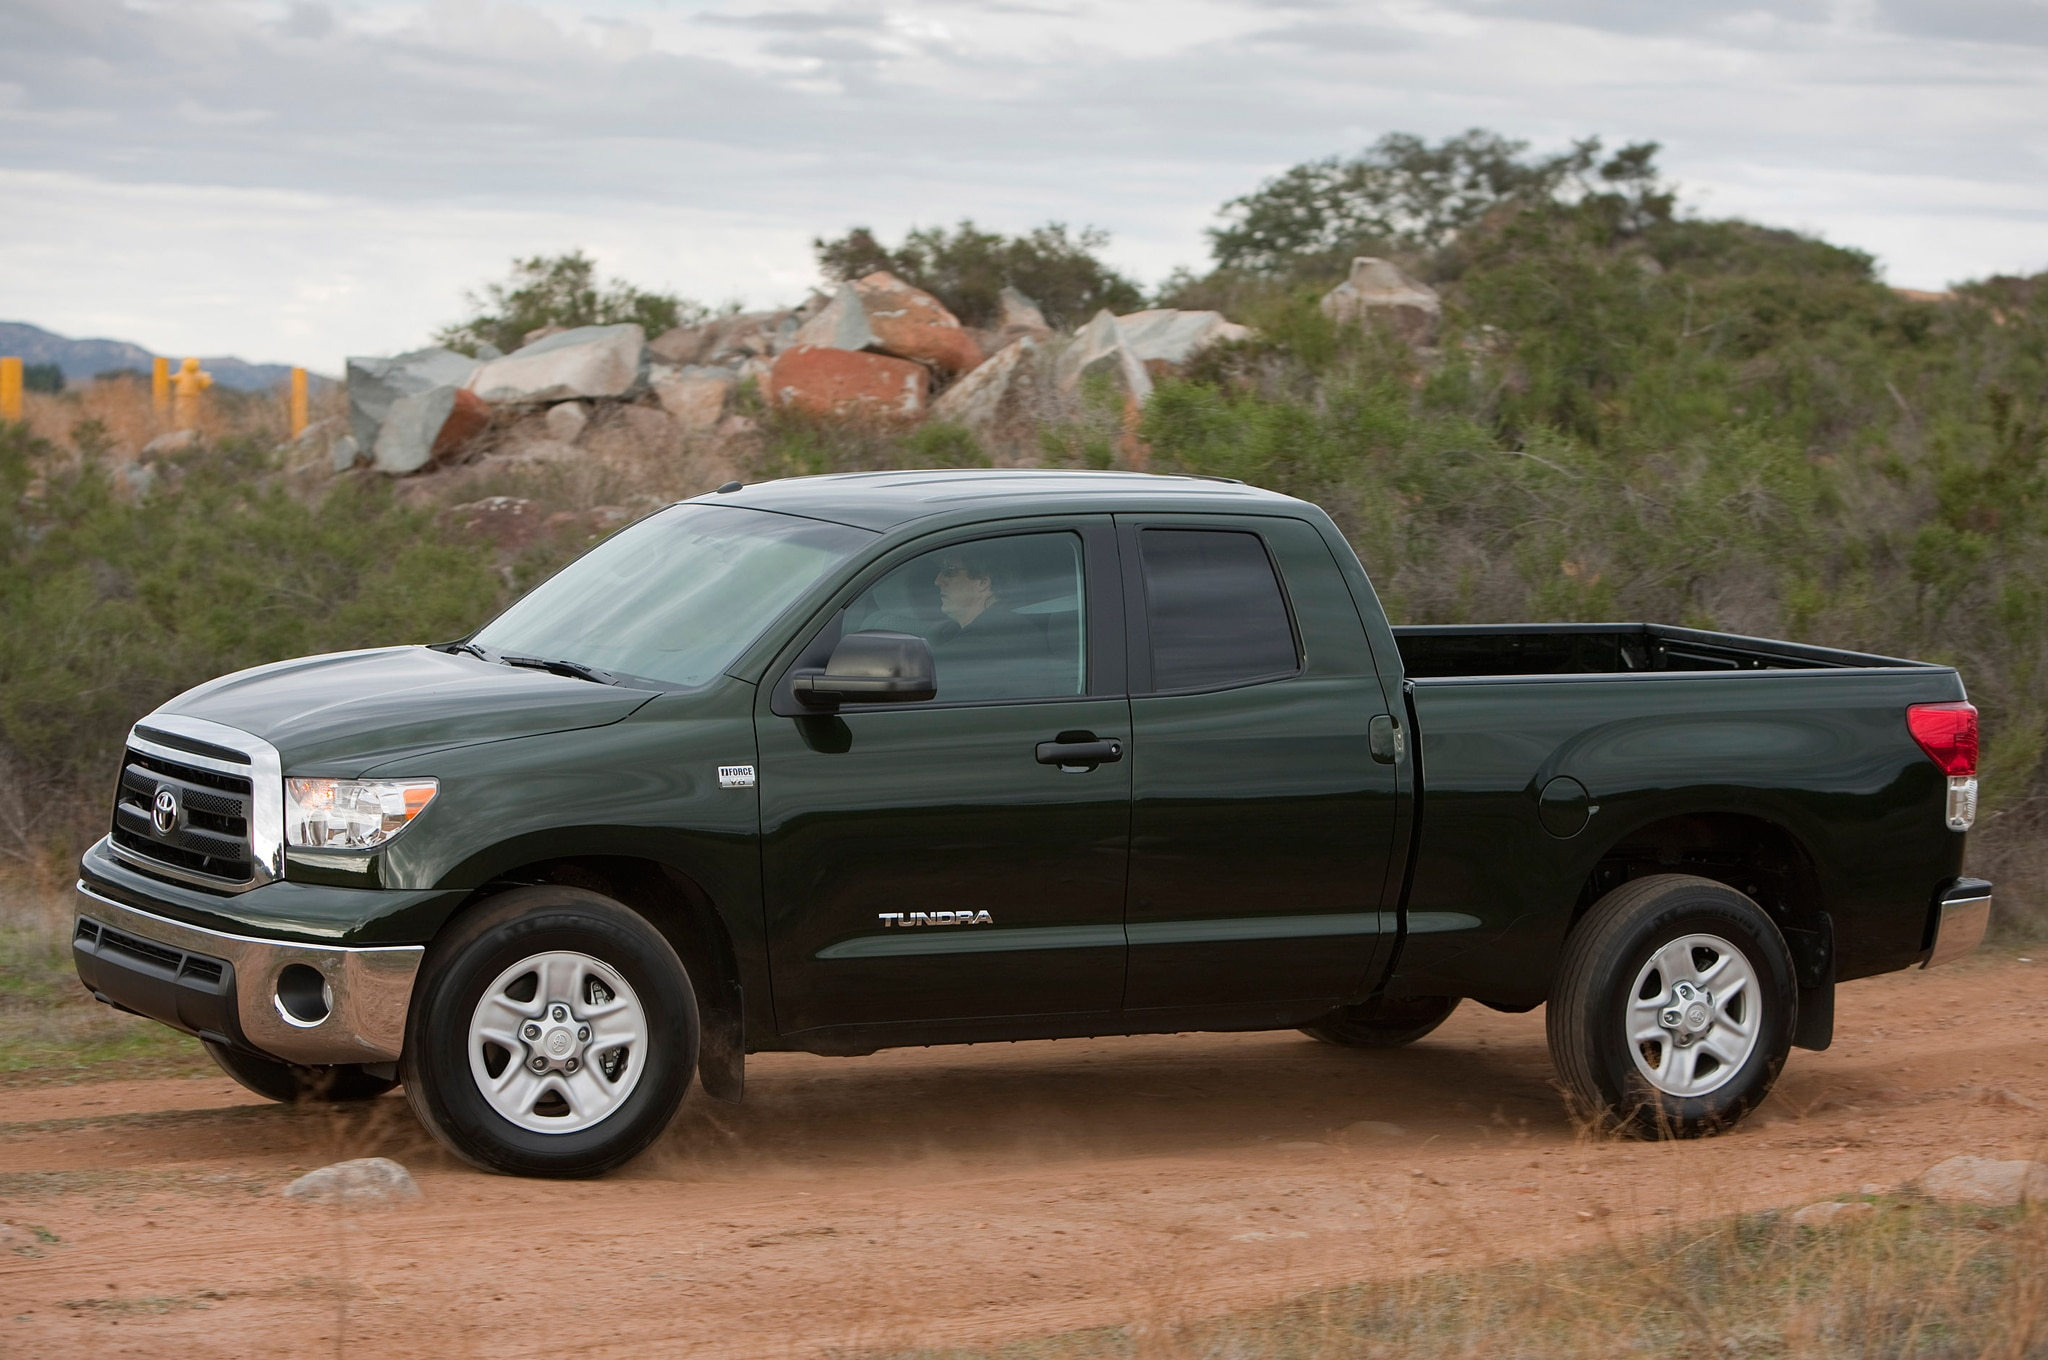 2013 Toyota Tundra Double Cab 4x4 - Editors' Notebook ...